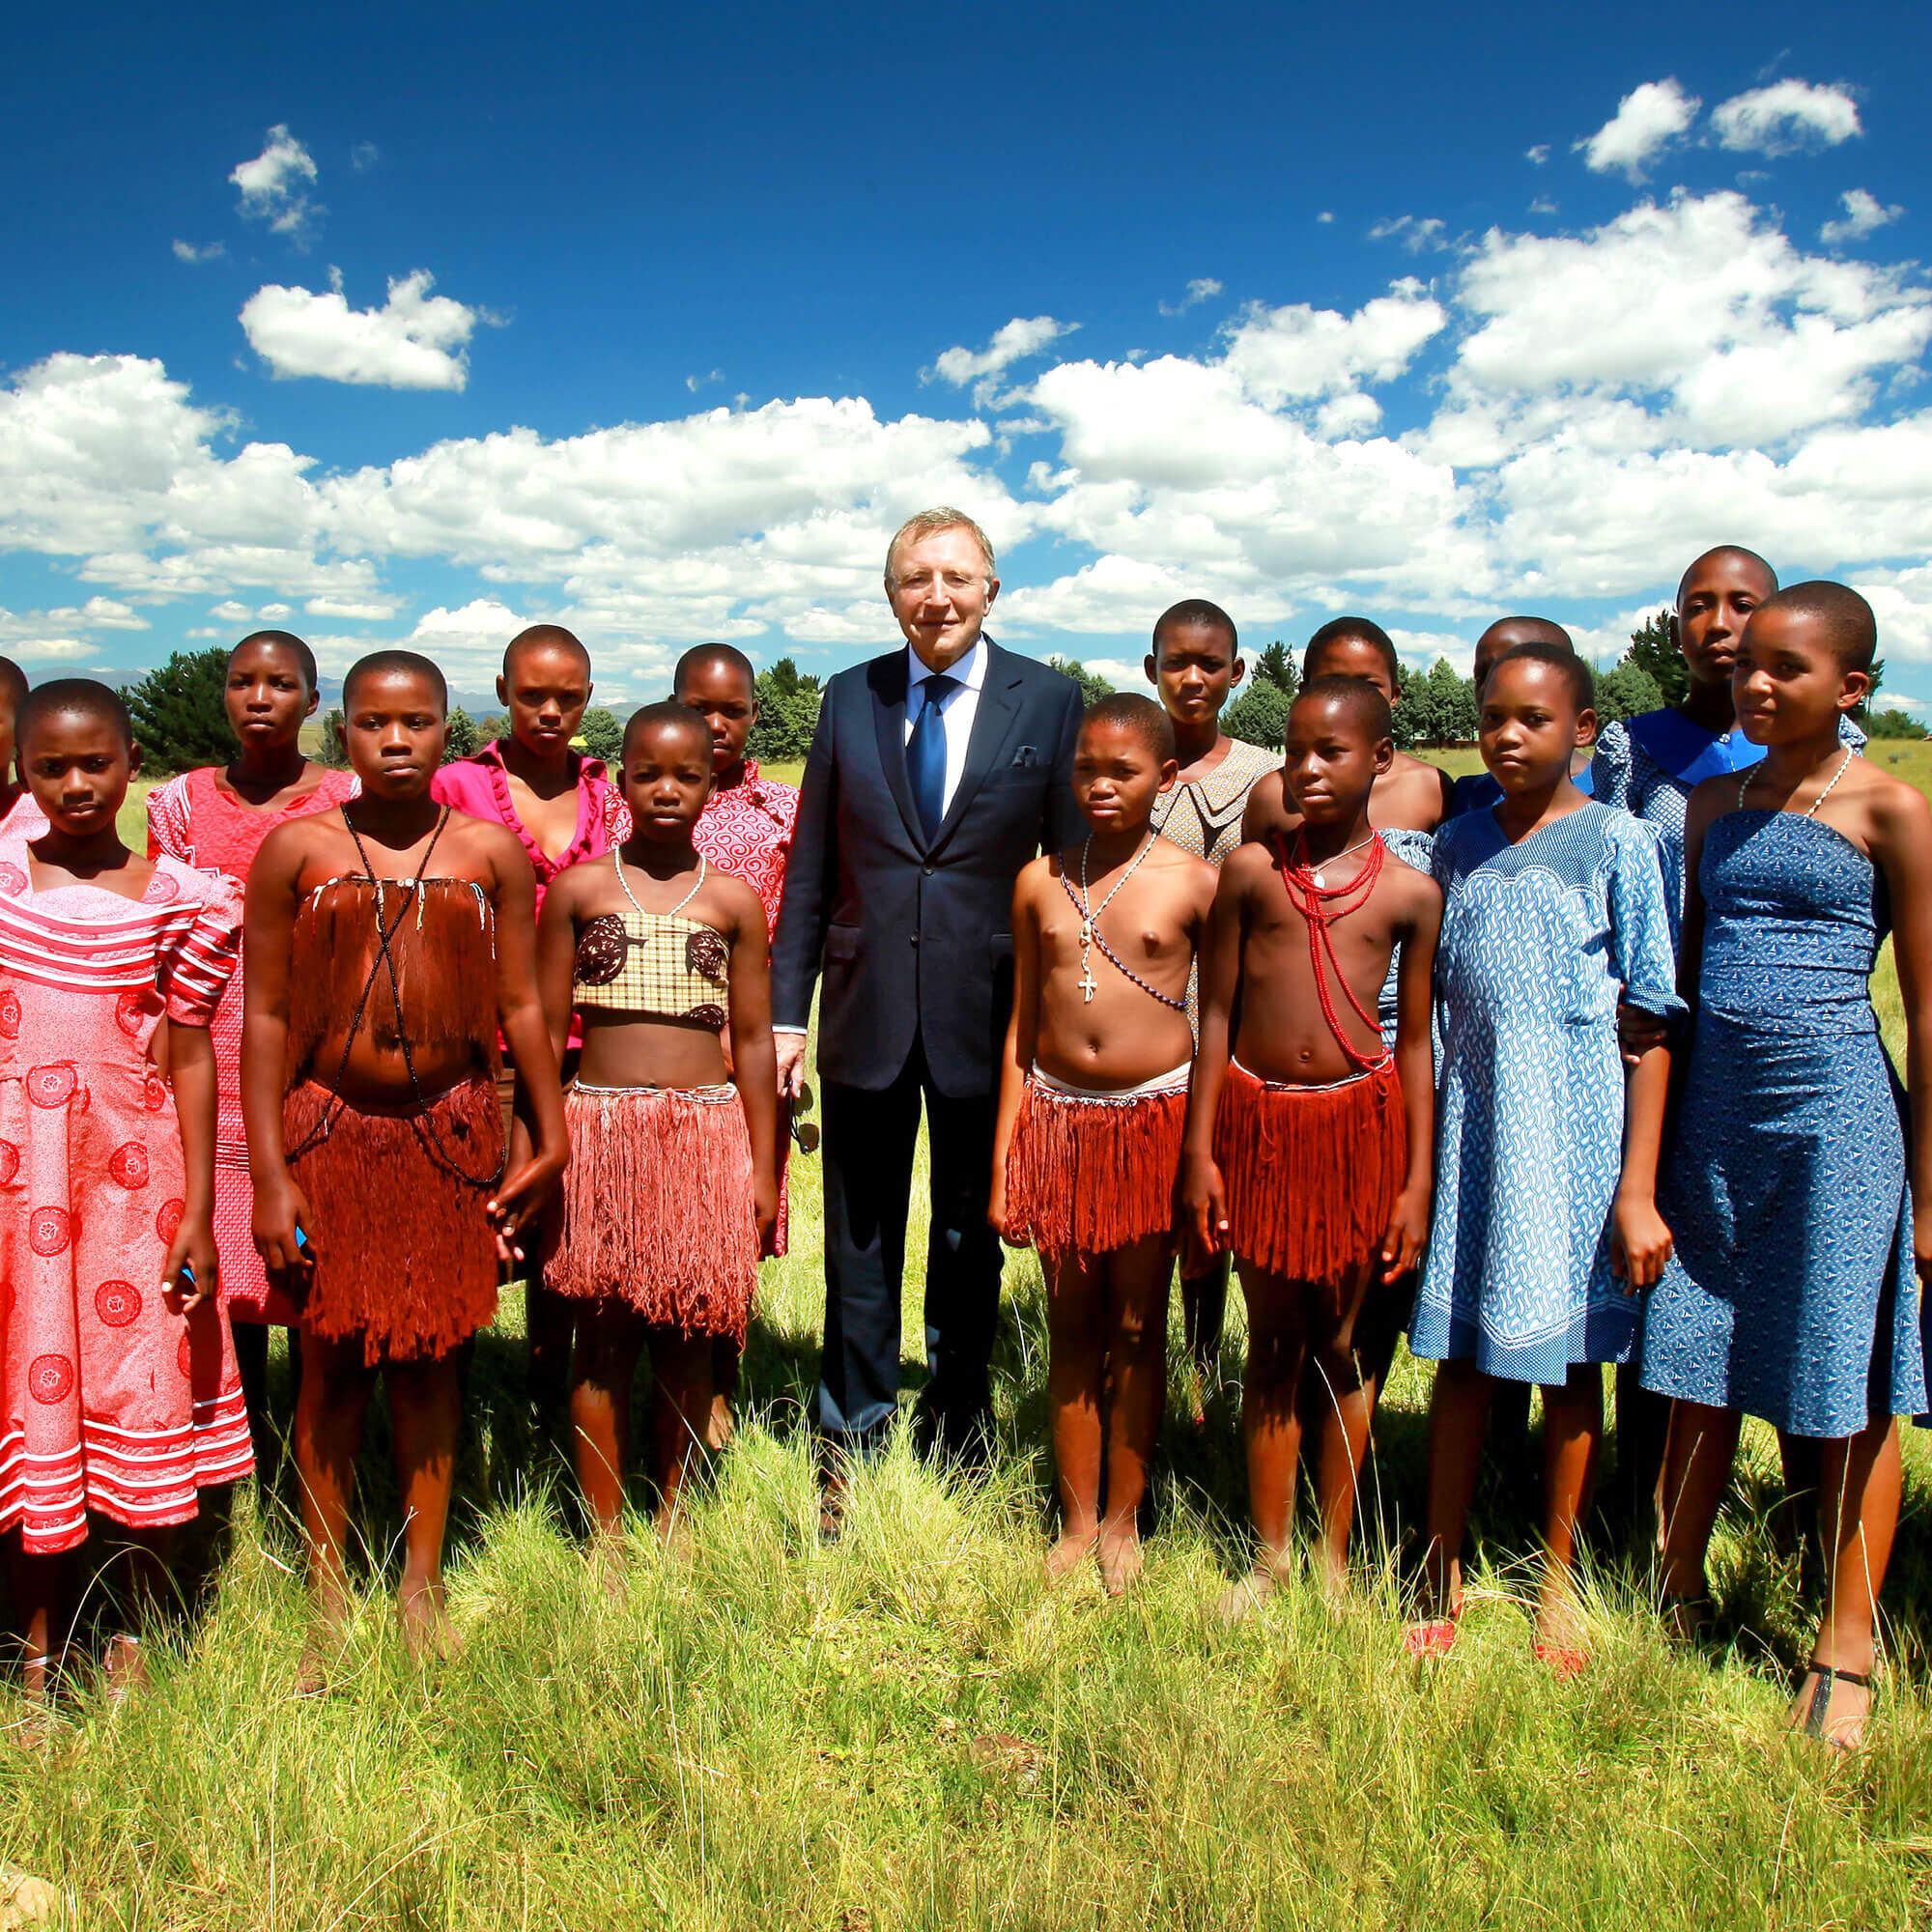 Mr Laurence Graff and children in South Africa